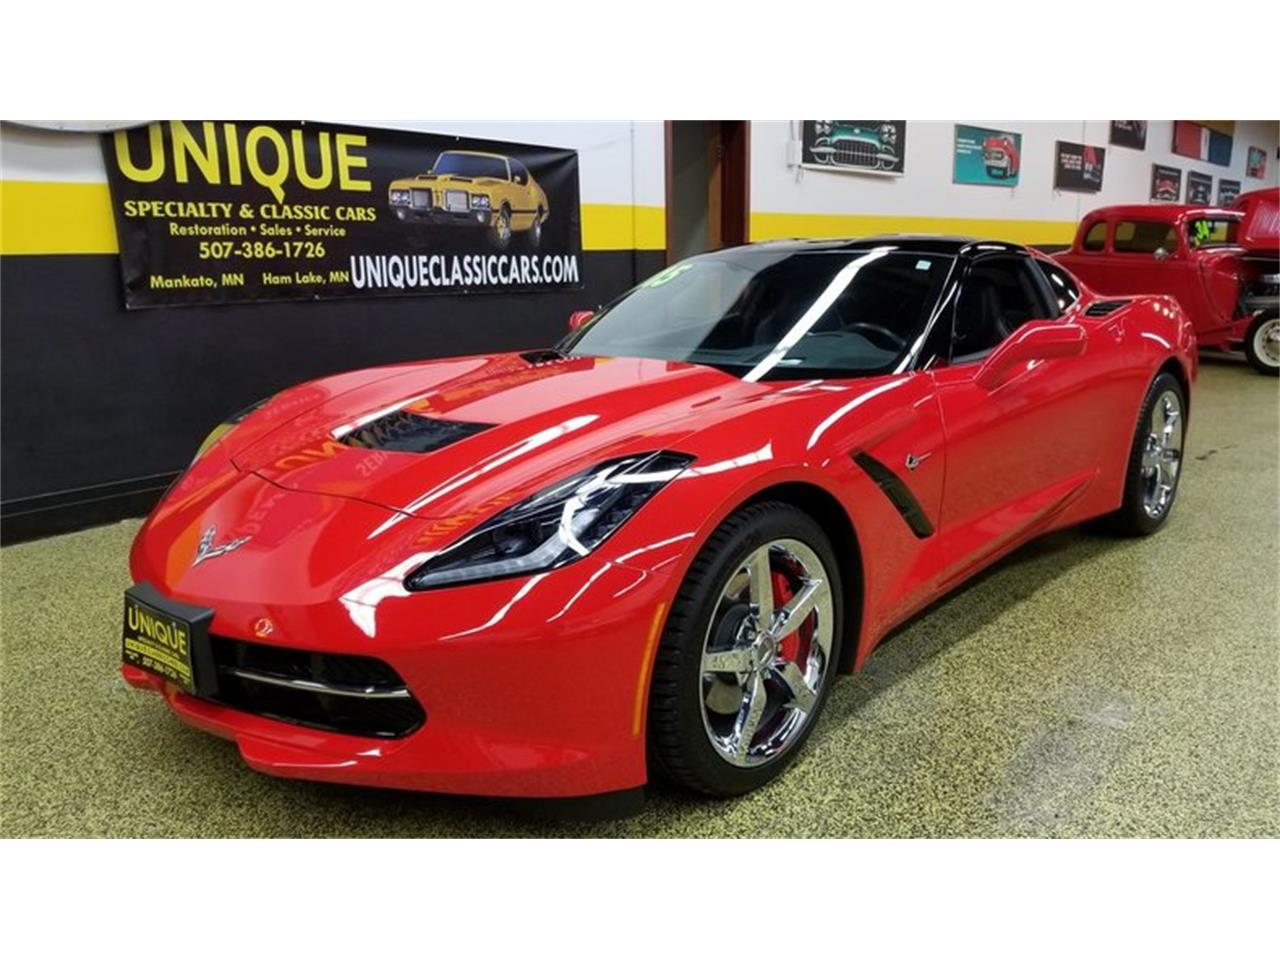 Large Picture of 2015 Chevrolet Corvette Coupe 3LT located in Minnesota - $48,900.00 Offered by Unique Specialty And Classics - MEL0